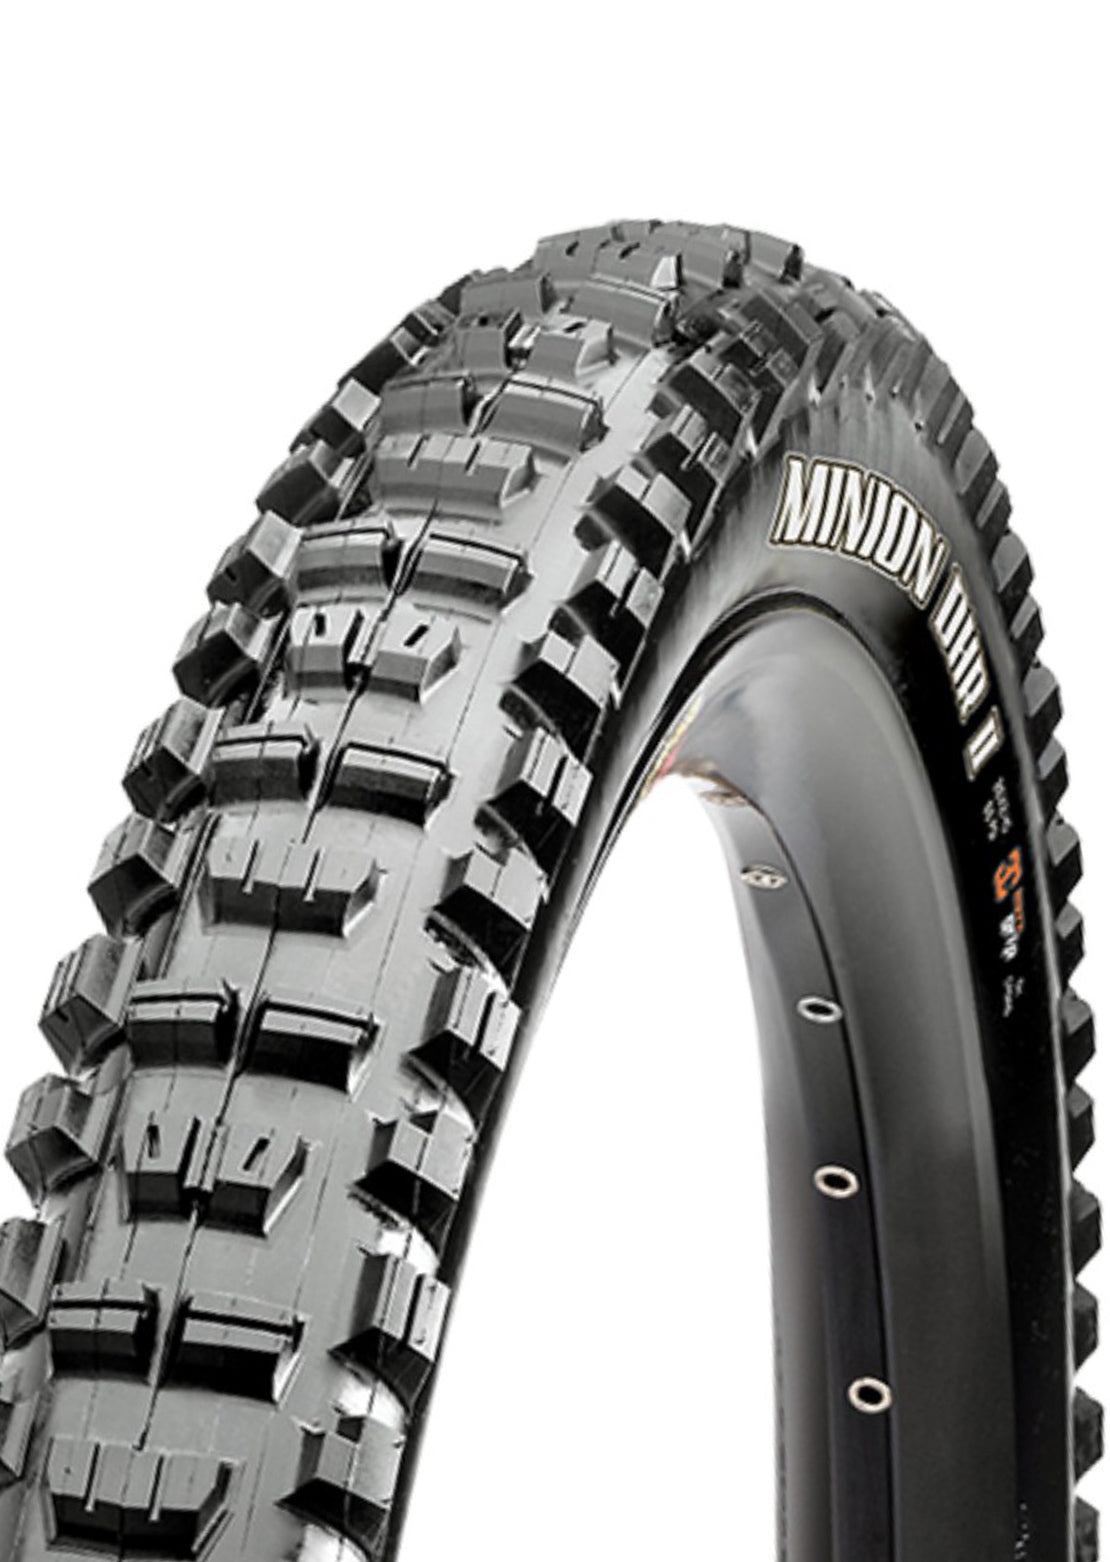 "Maxxis Minion DHR II 3C Maxx Terra F60TPI Mountain Bike Tires - 26"" x 2.4"" Black"